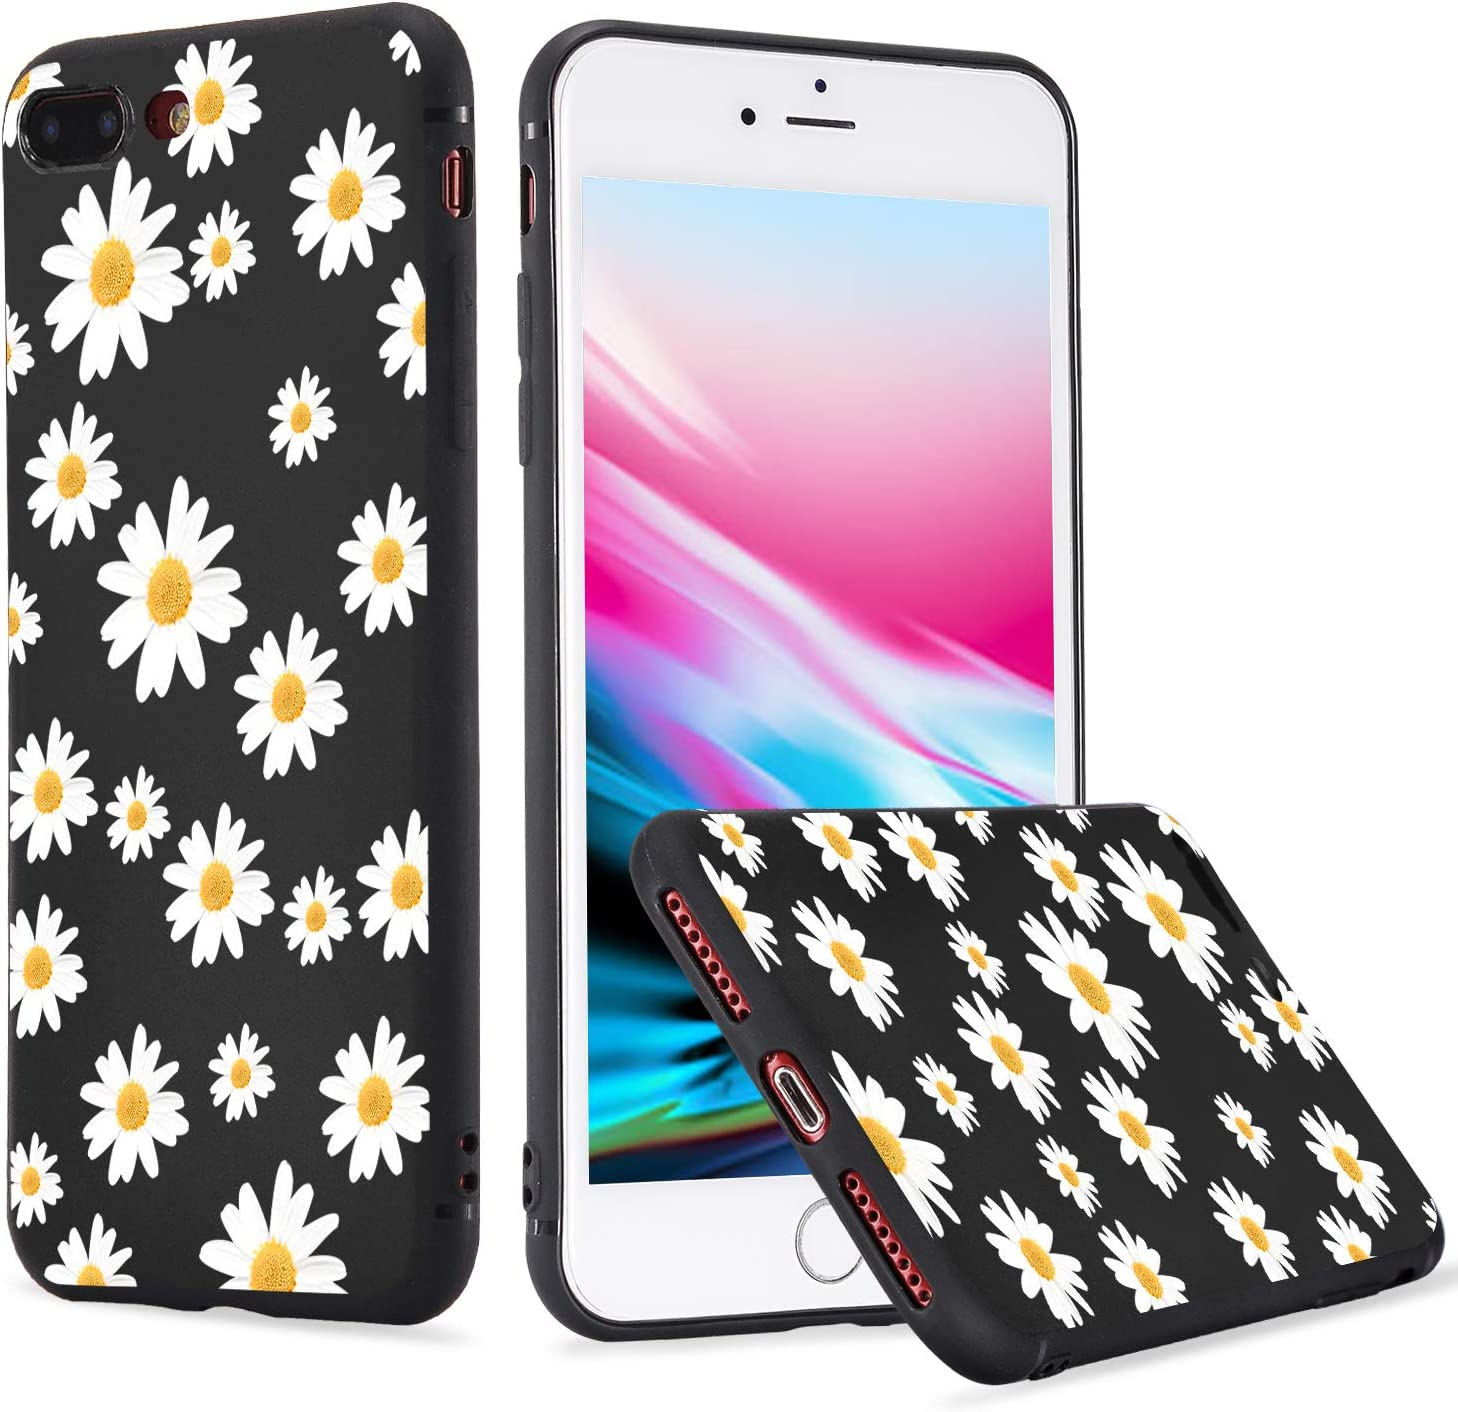 LuGeKe Dasiy Case for iPad 10.2 inch 2019 iPad 7th Generation,Floral Patterned iPad Case Cover,Lightweight Slim Standing iPad Cover for Girls Women,Cute Daisy